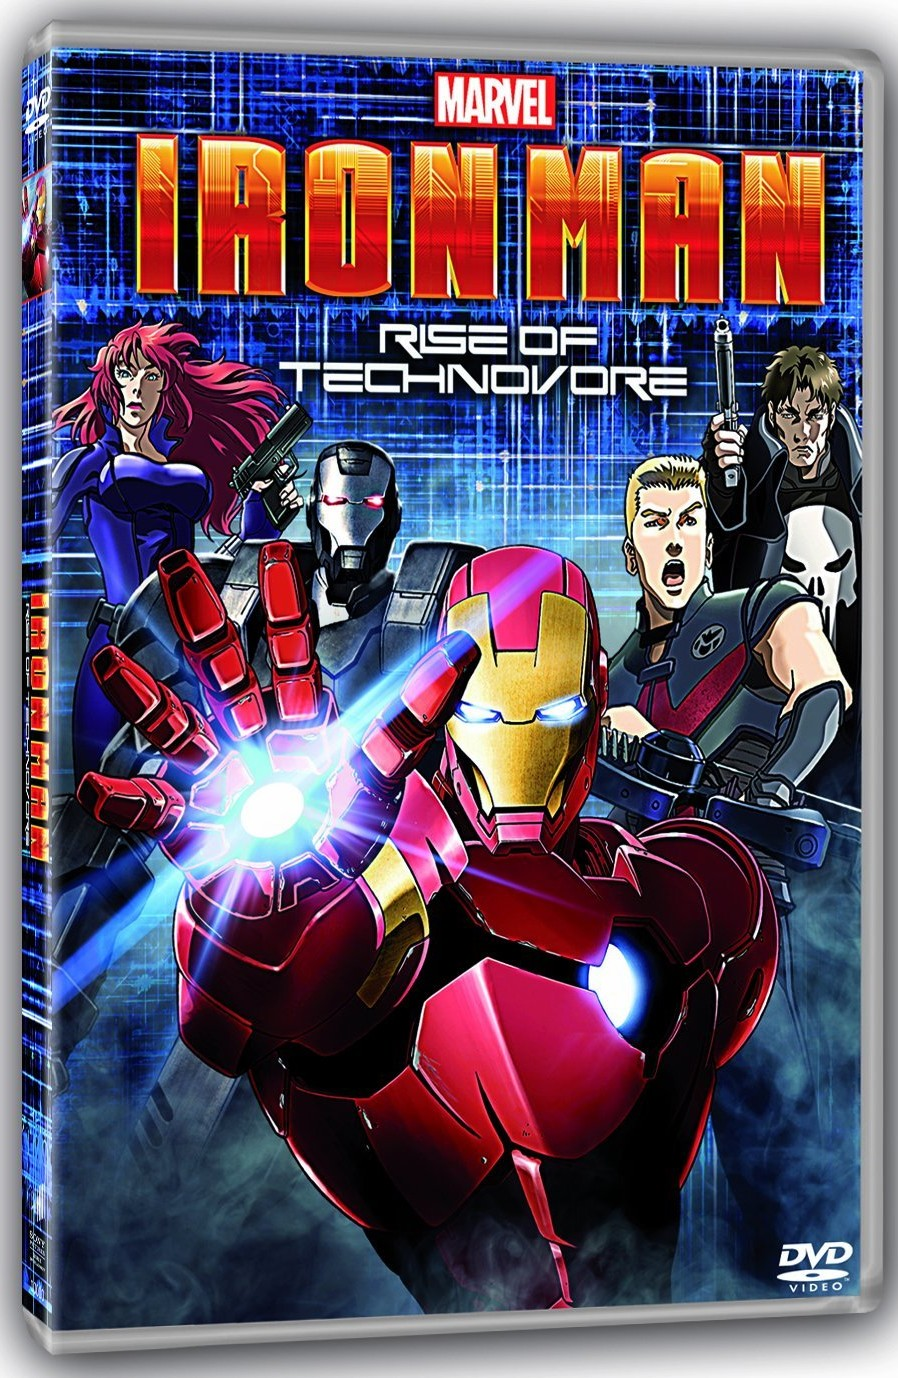 iron man rise of technovore dvd sony marvel